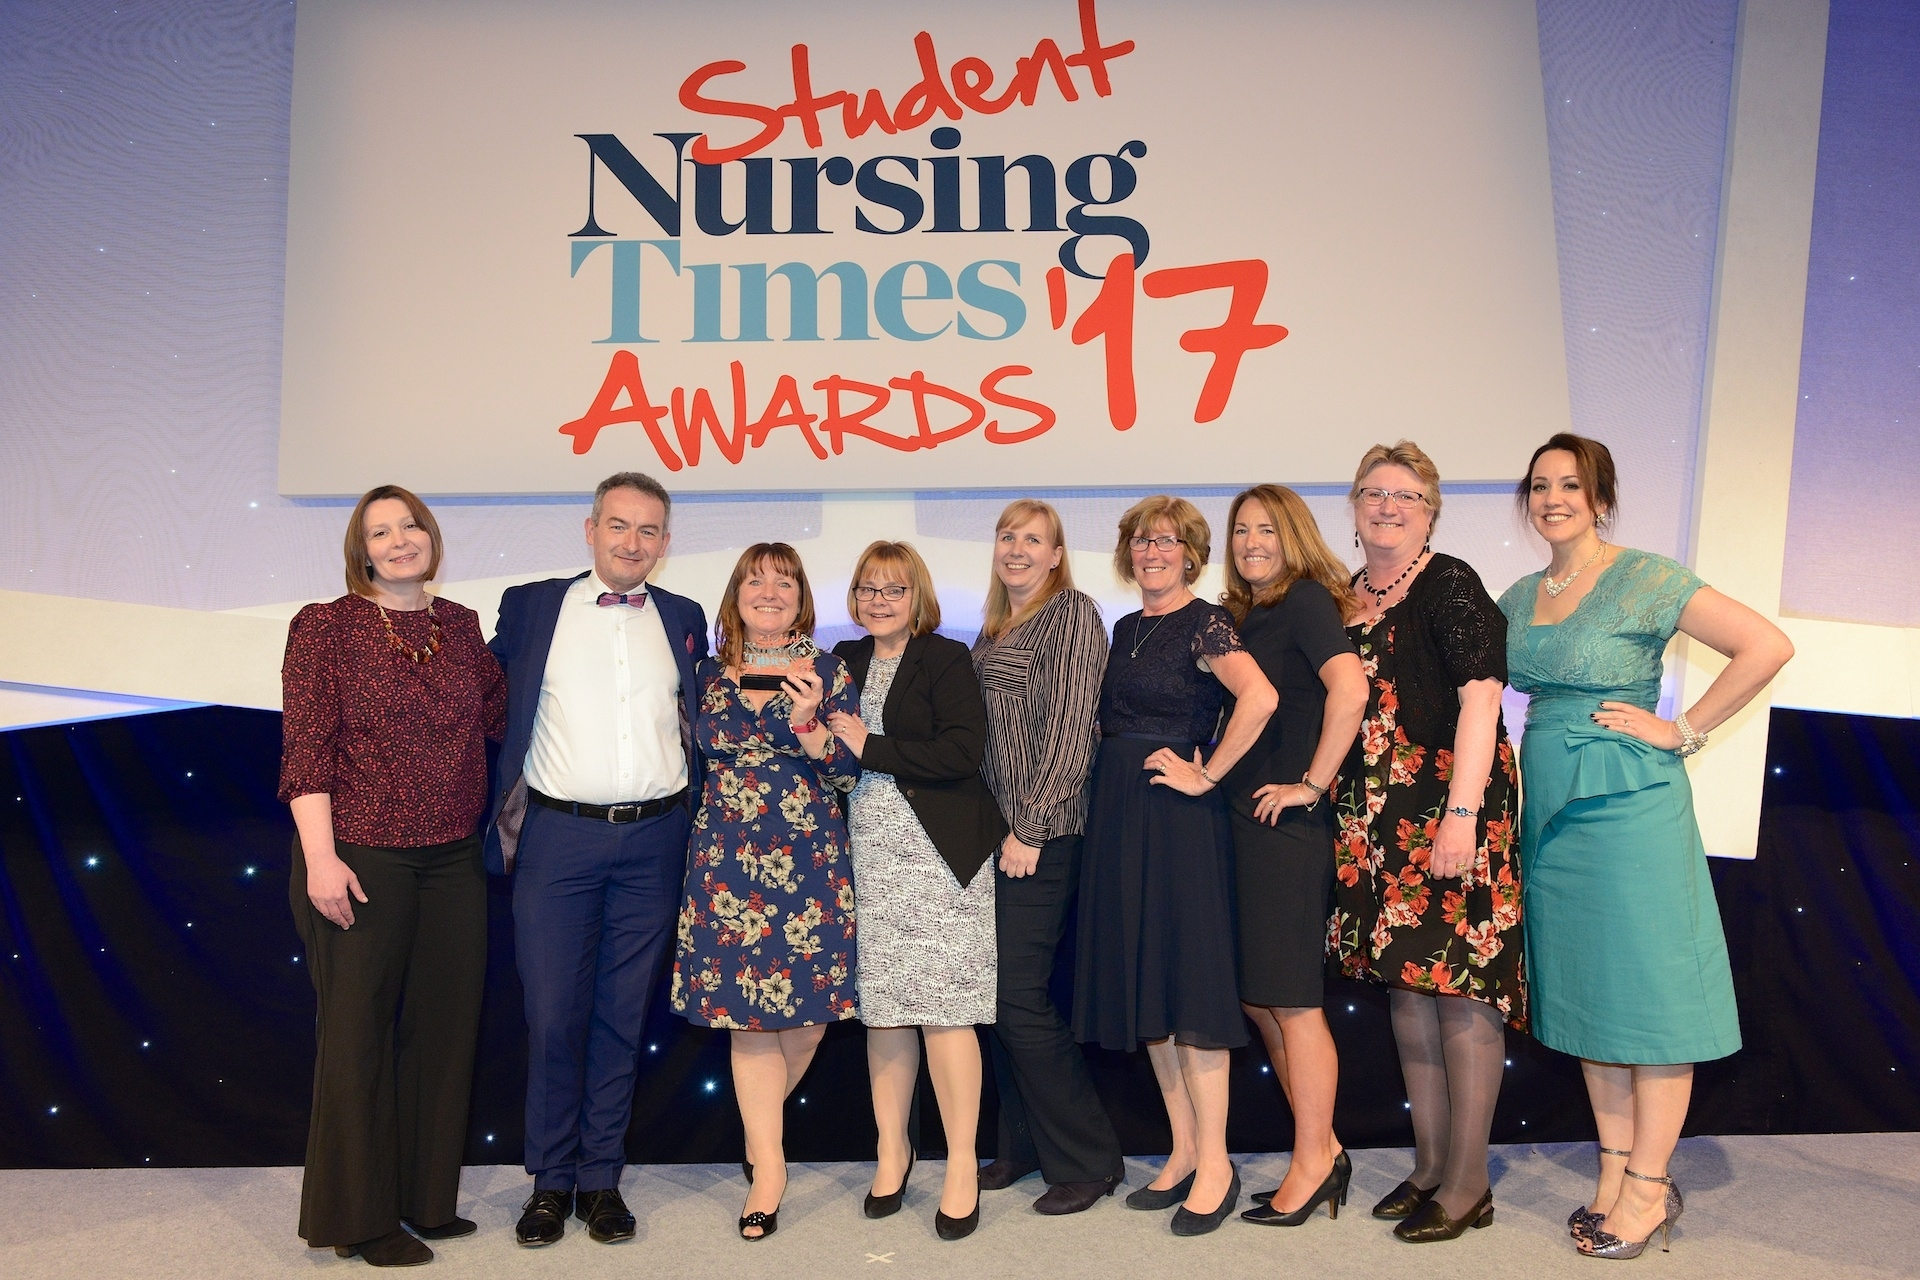 Members of the staff from the Trust's Return to Practice scheme and the University of Chester celebrate winning Return to Practice Course of the Year at the Student Nursing Times Awards 2017